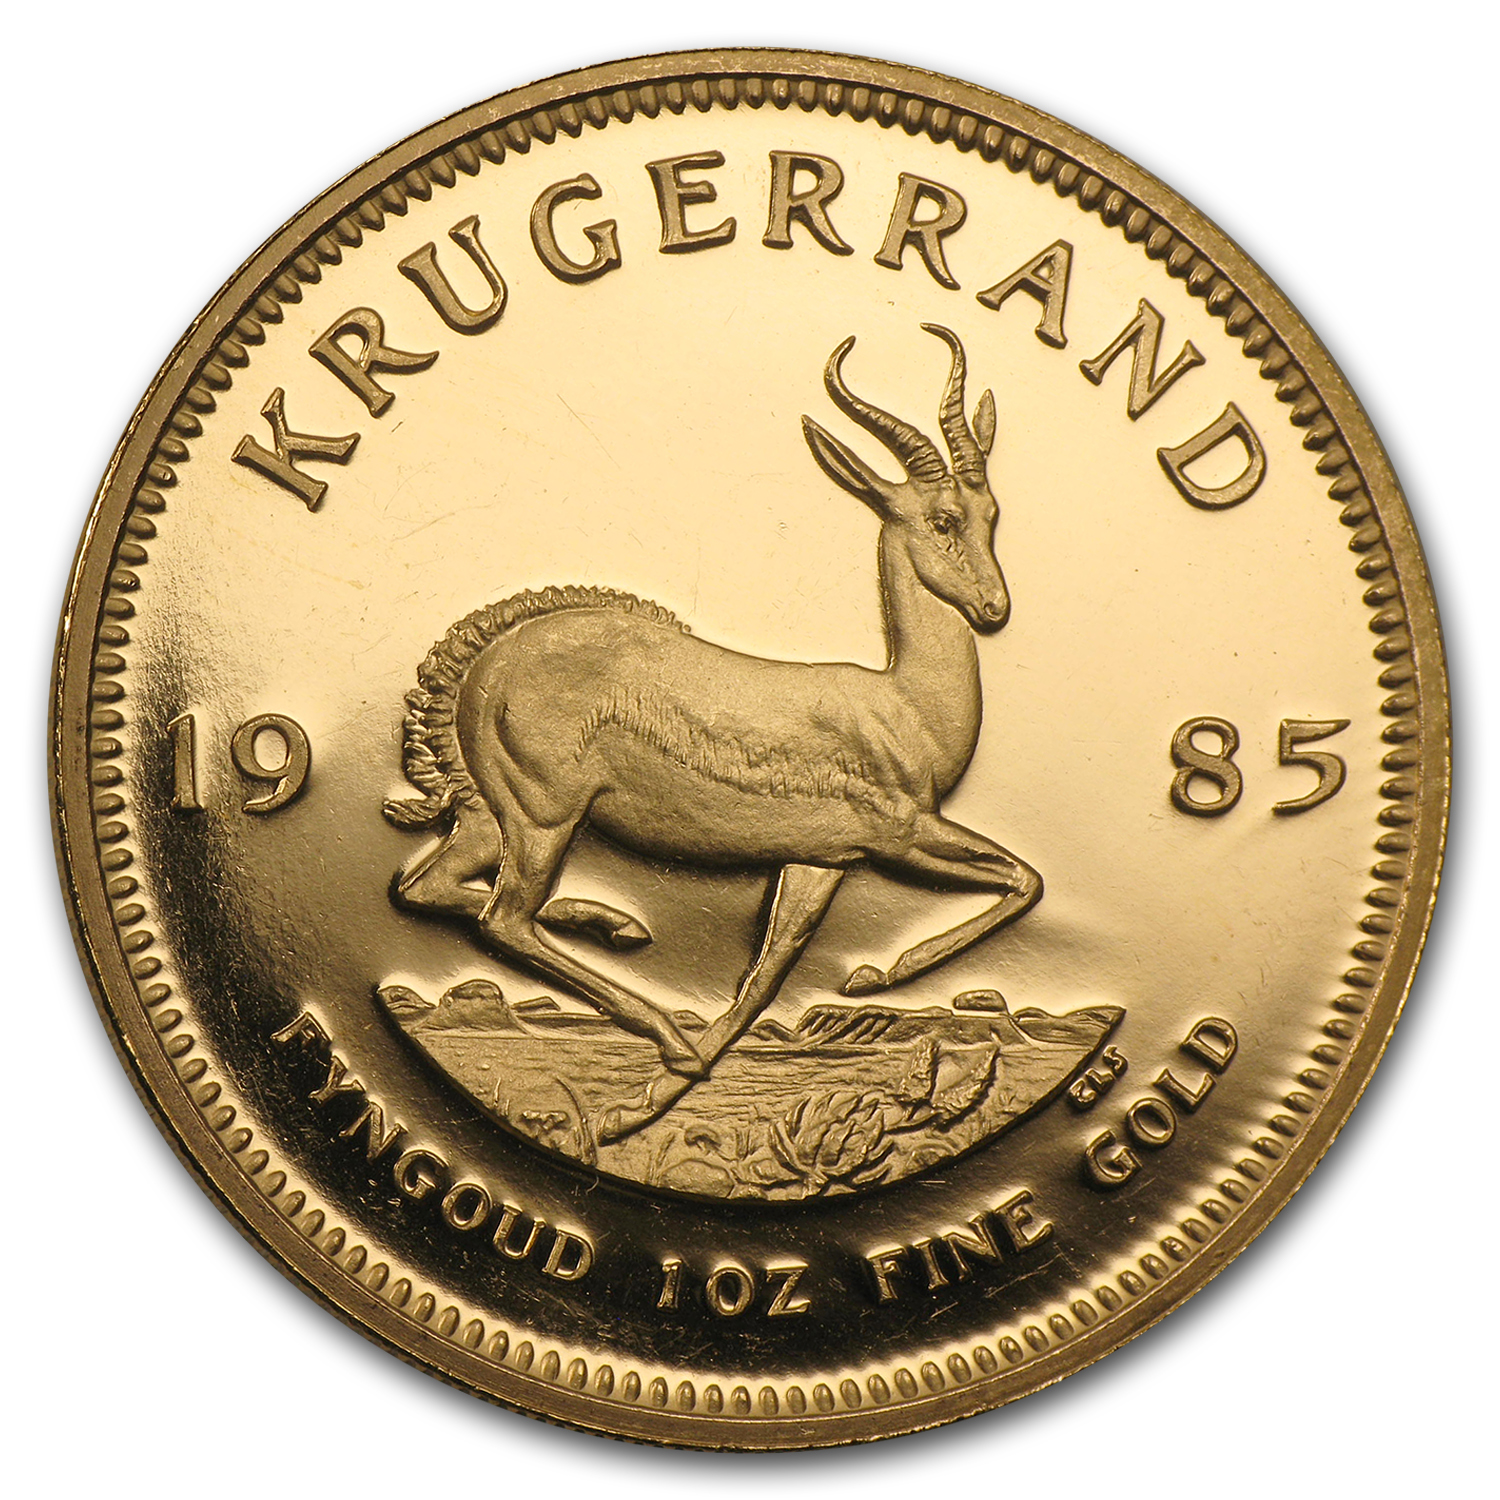 1985 South Africa 1 oz Proof Gold Krugerrand